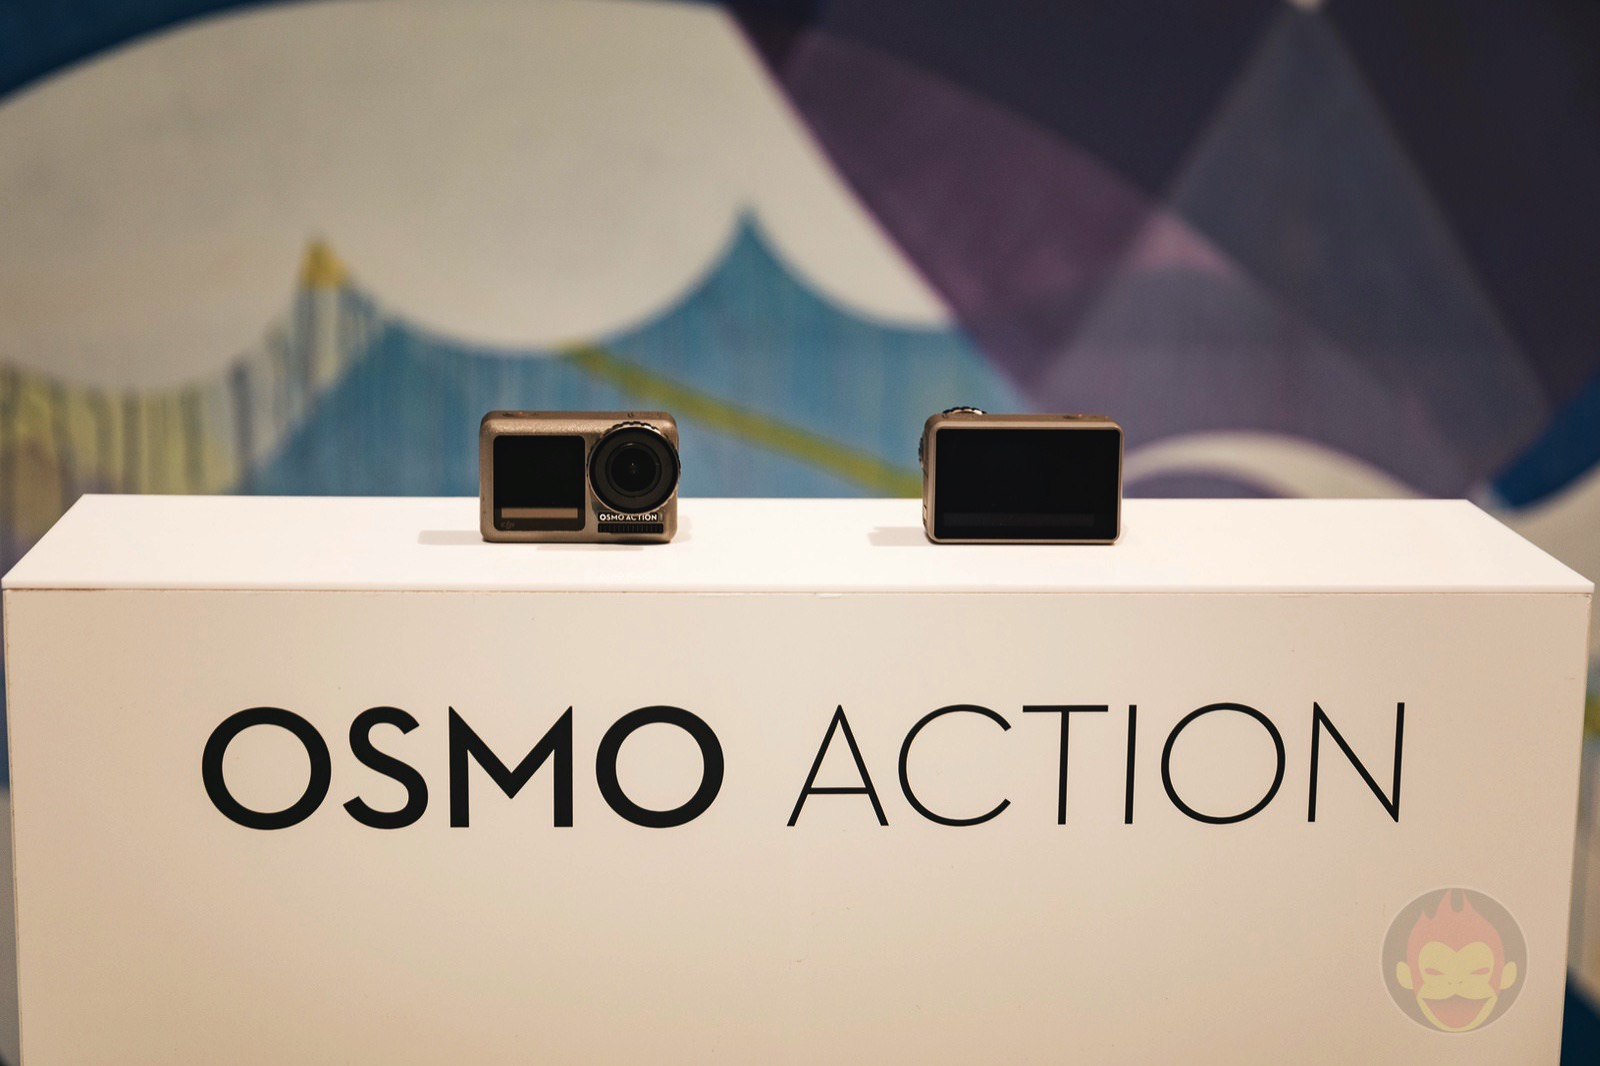 DJI OSMO Action Hands on 15